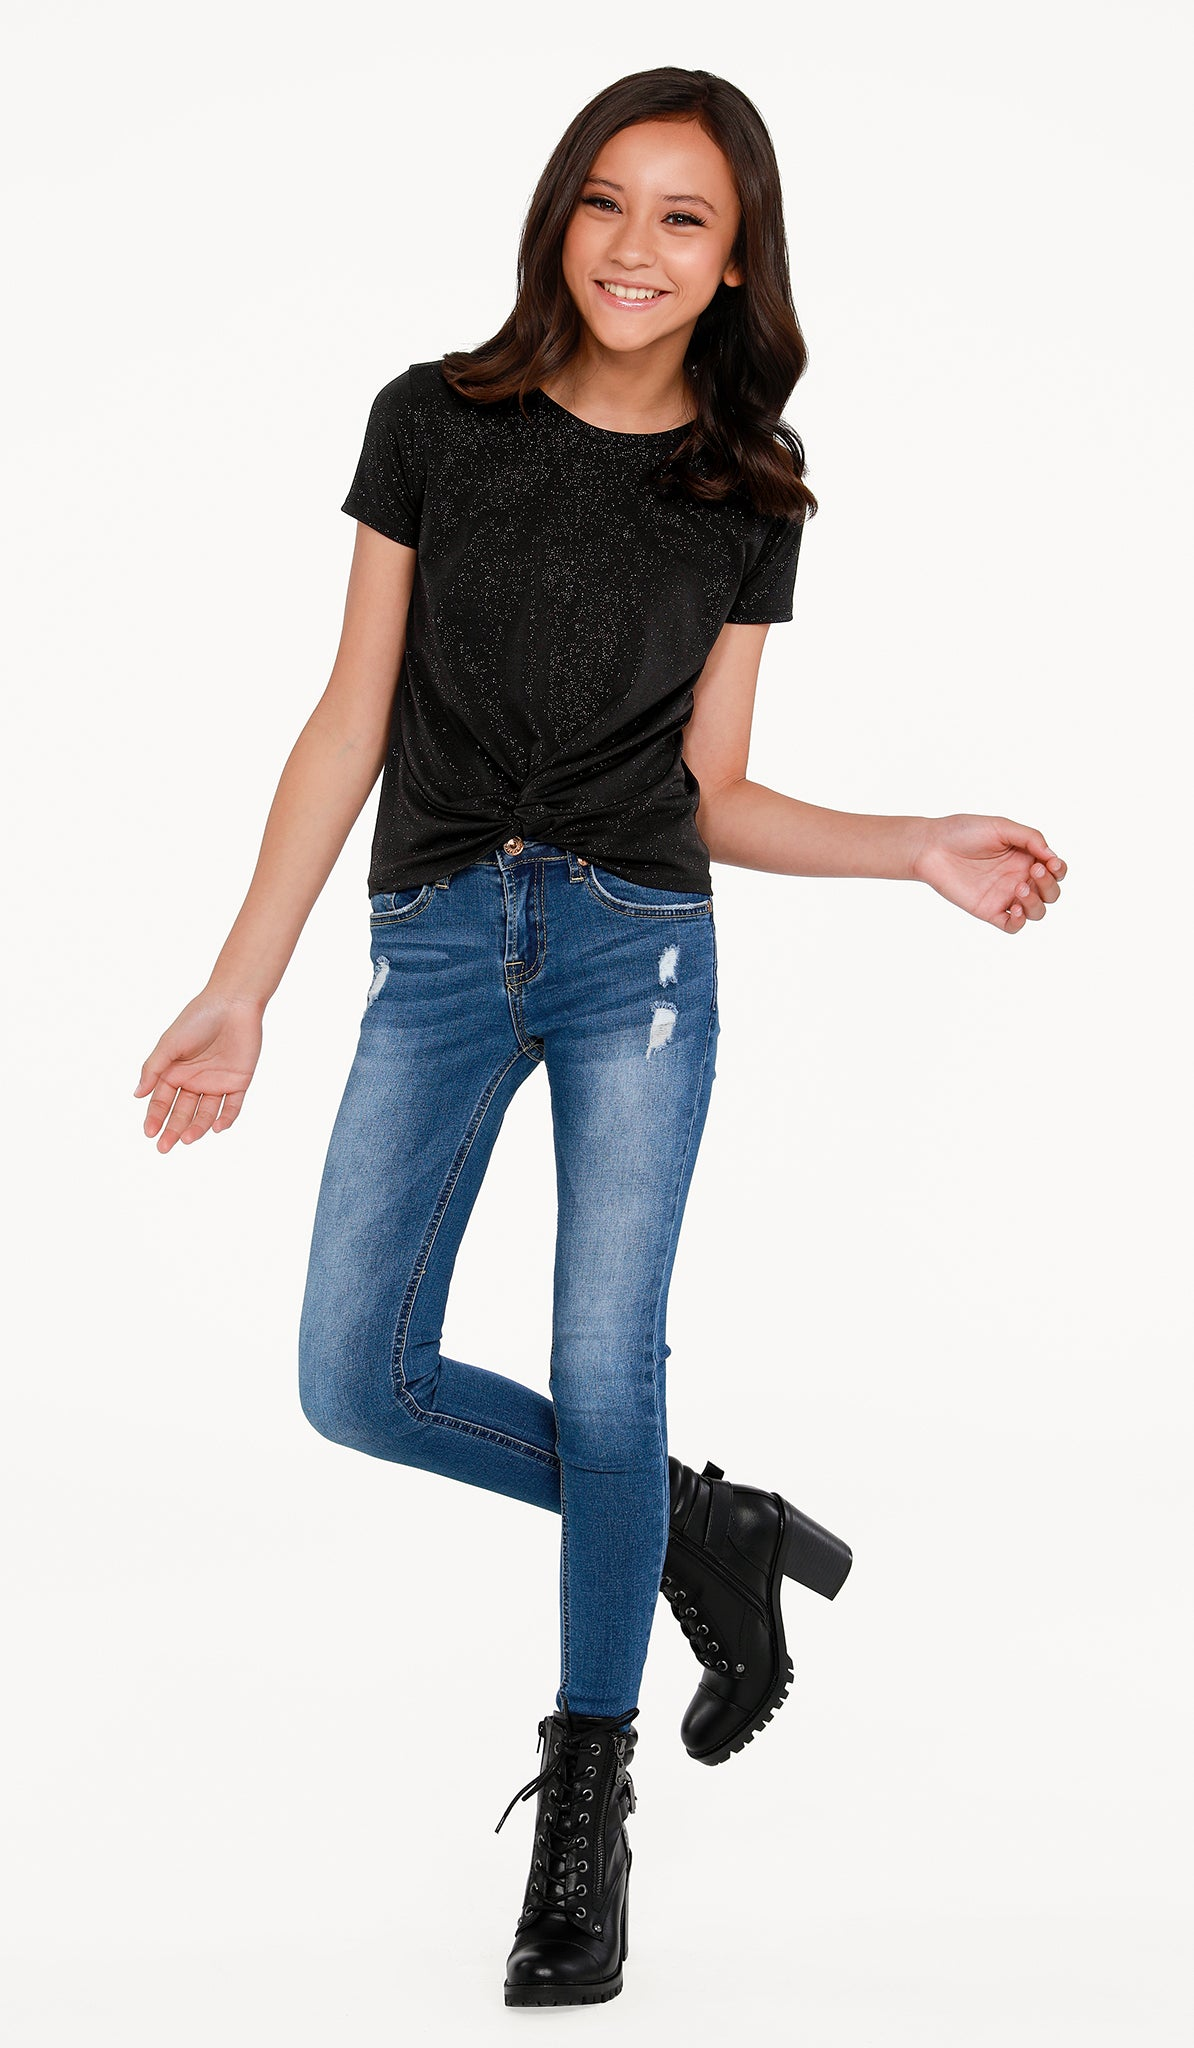 The Sally Miller Sparkle Knot Top Black | Black sparkle stretch knit knot top with cap sleeves